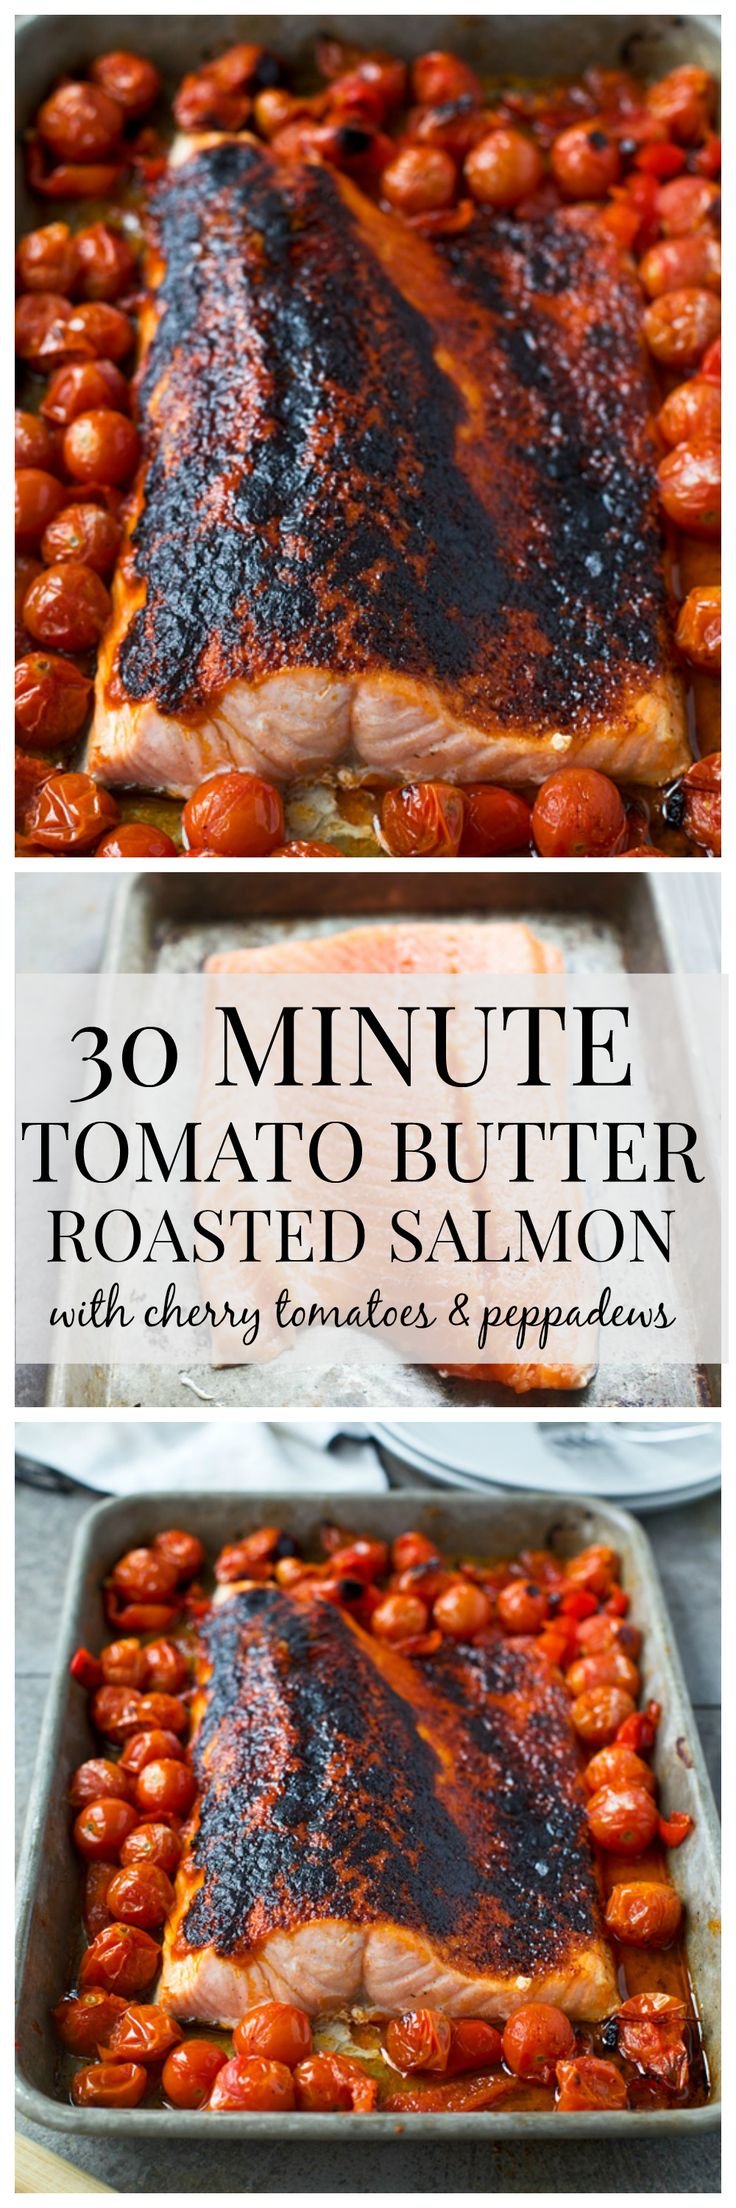 Tomato Butter Roasted Salmon with Cherry Tomatoes and Peppadews - Comes together in under 30 minutes!